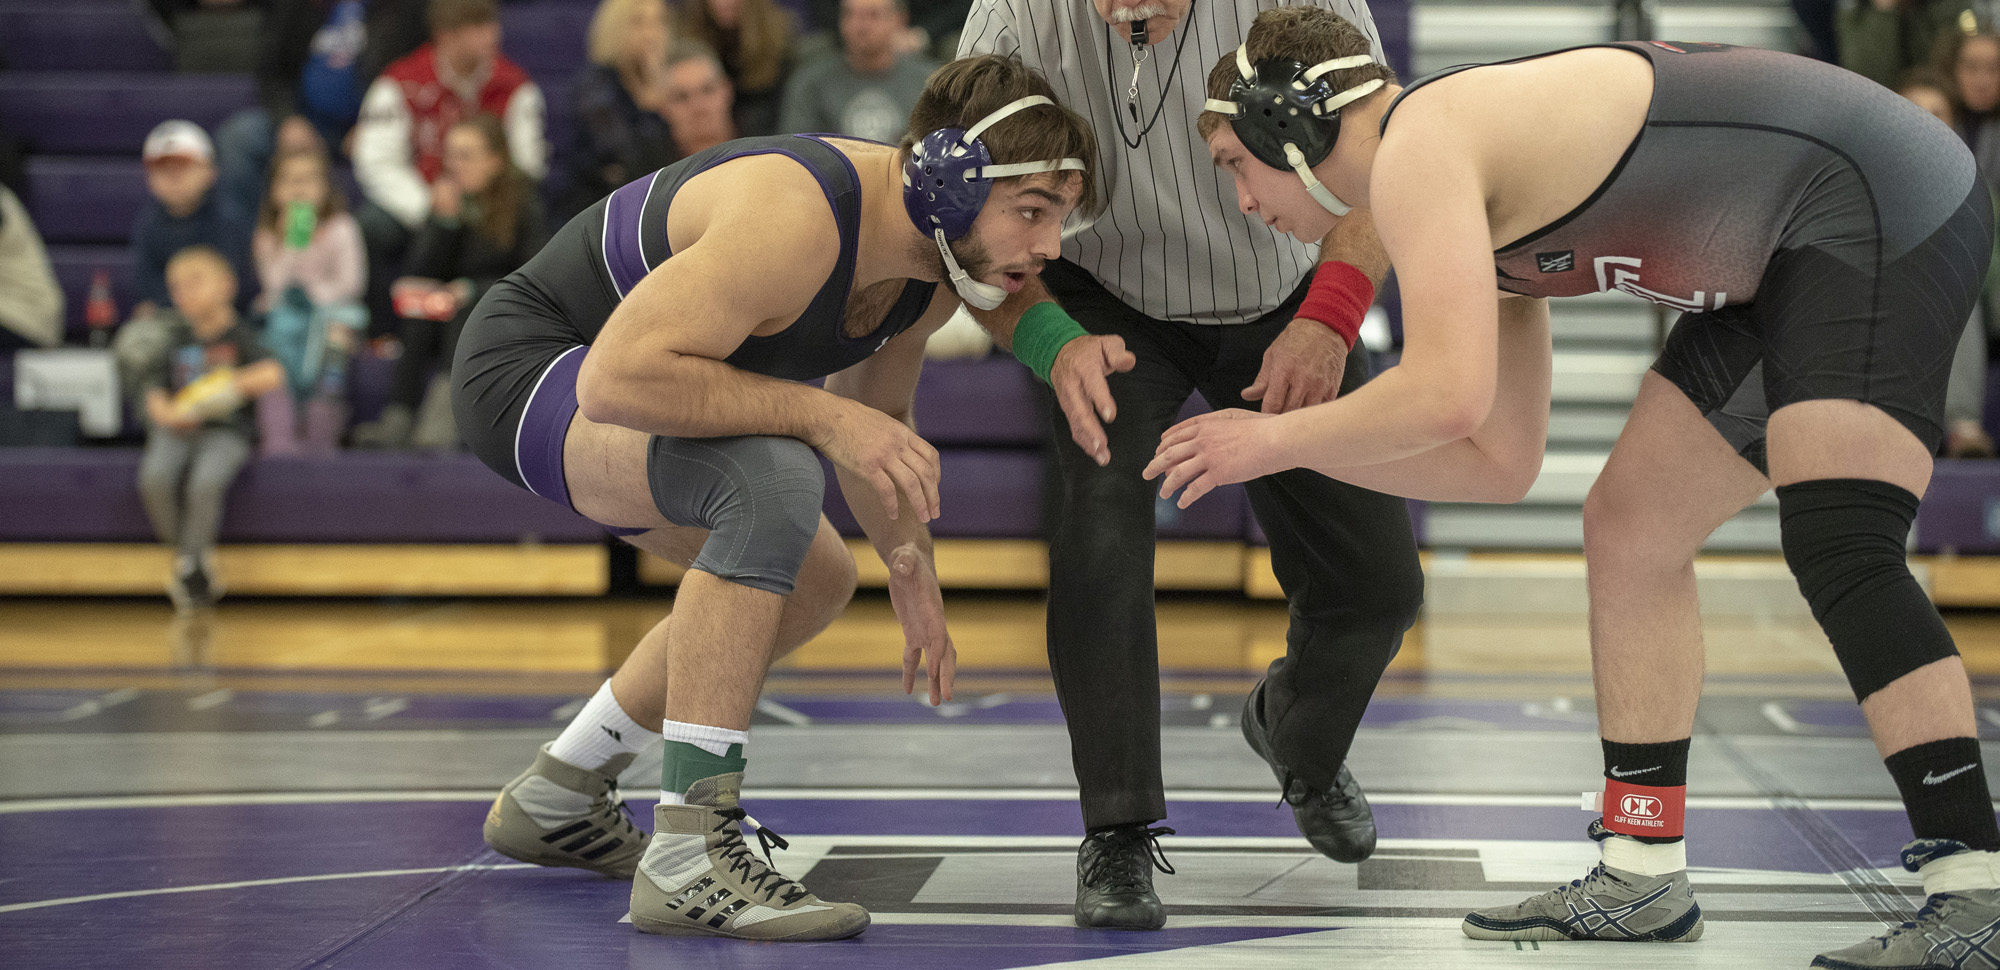 Dan D'Agostini has been ranked among the nation's top wrestlers at 197 pounds.